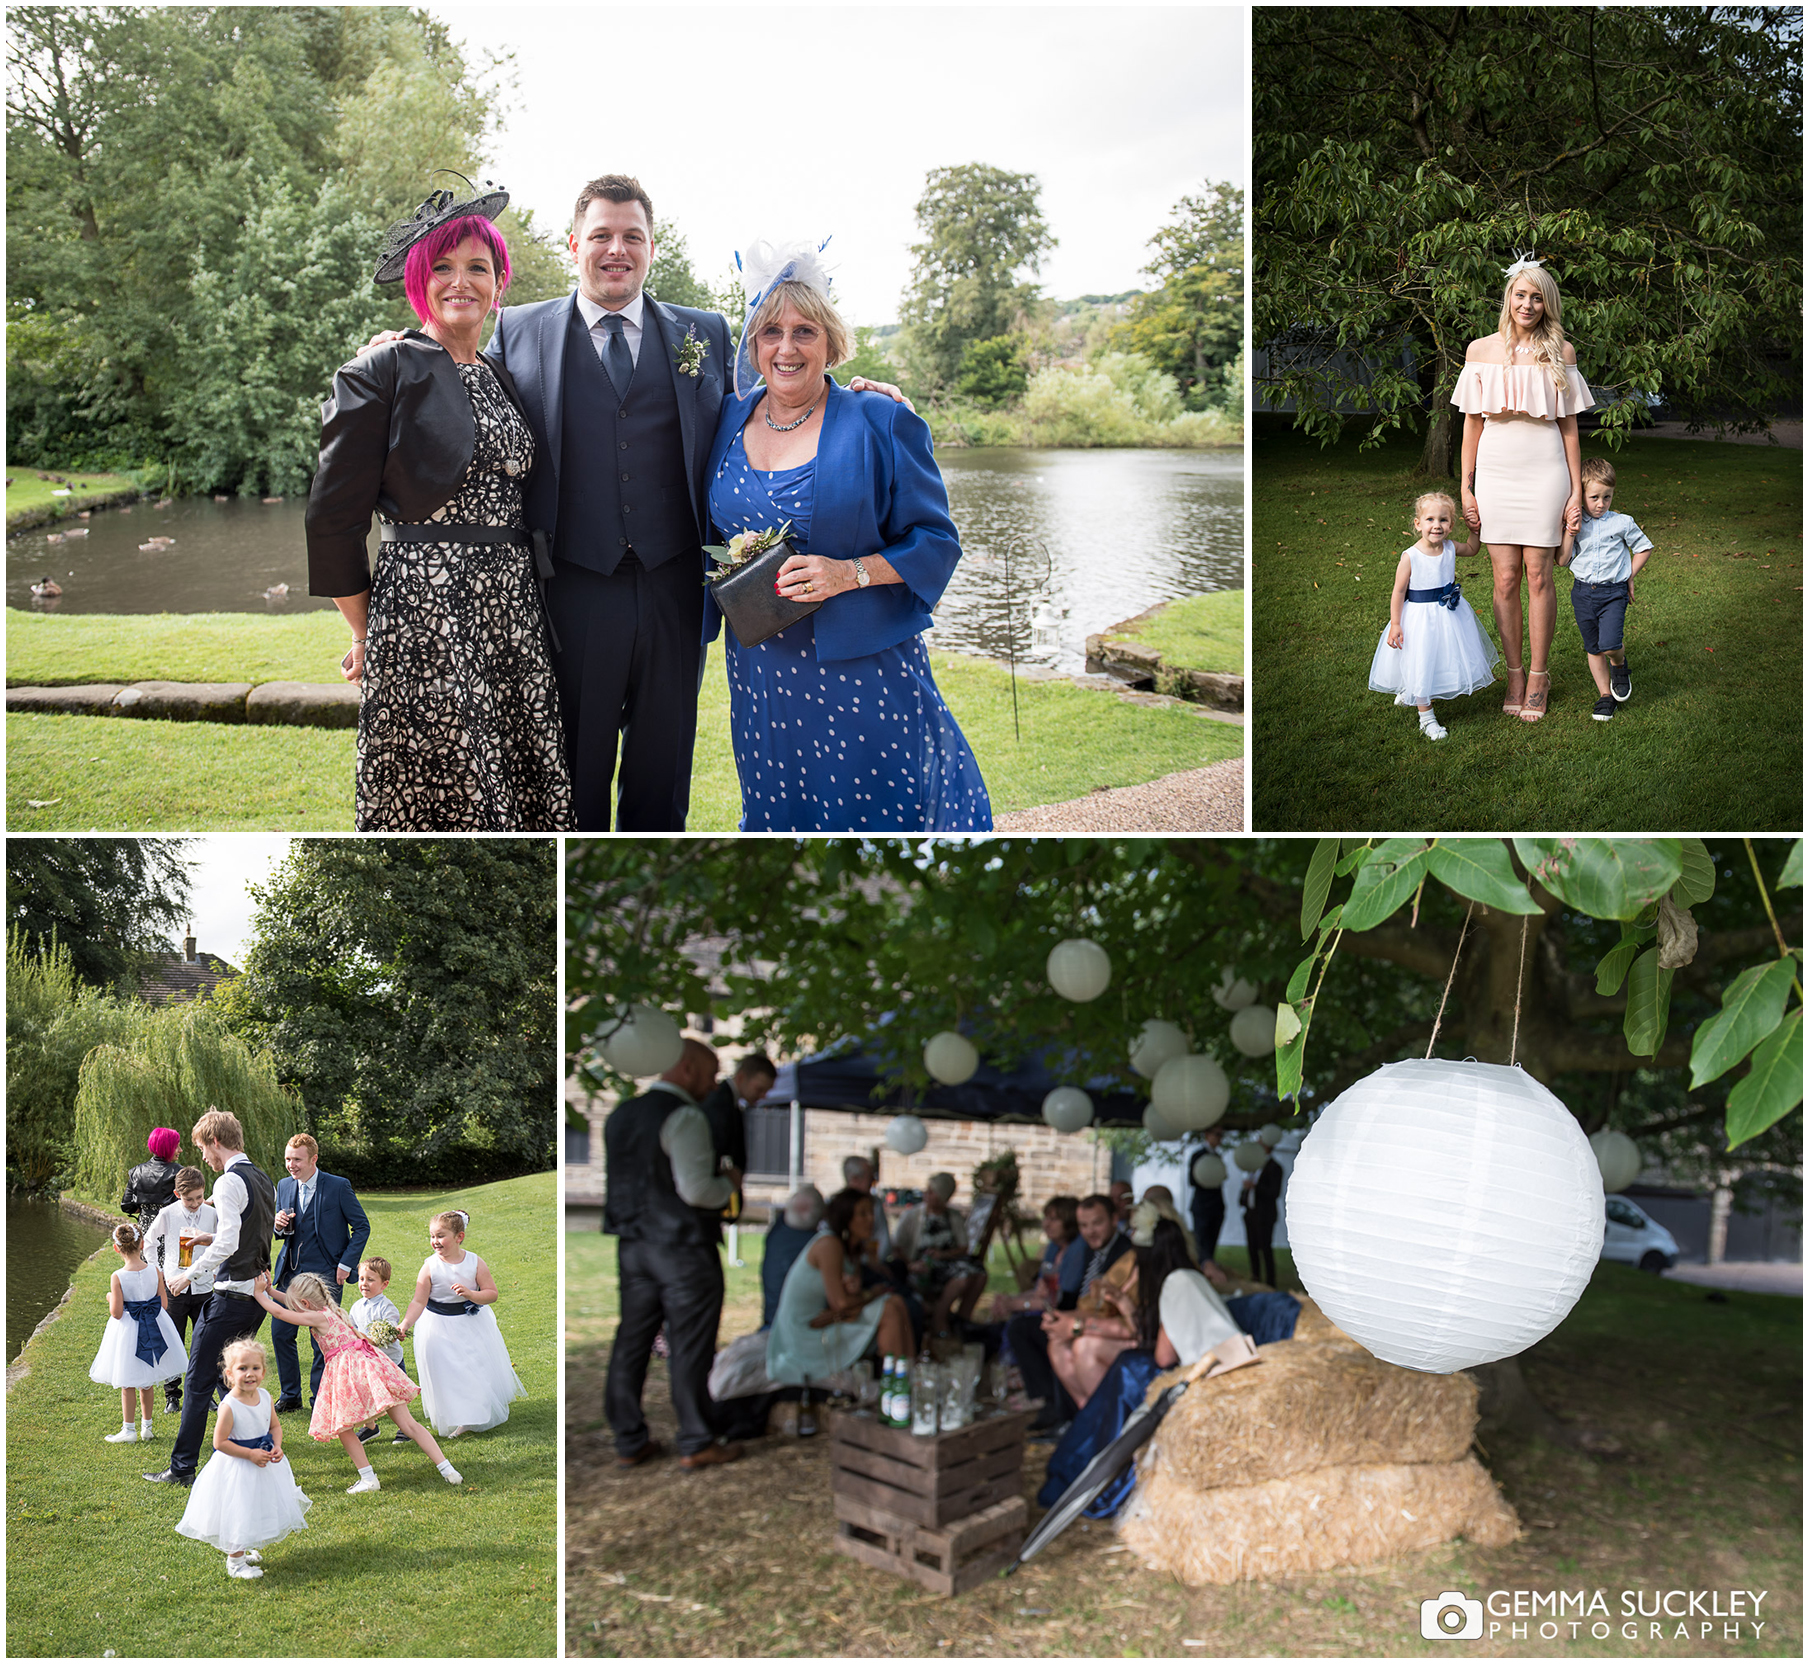 east-riddlesden-hall-summer-wedding©gemmasuckleyphotography.jpg